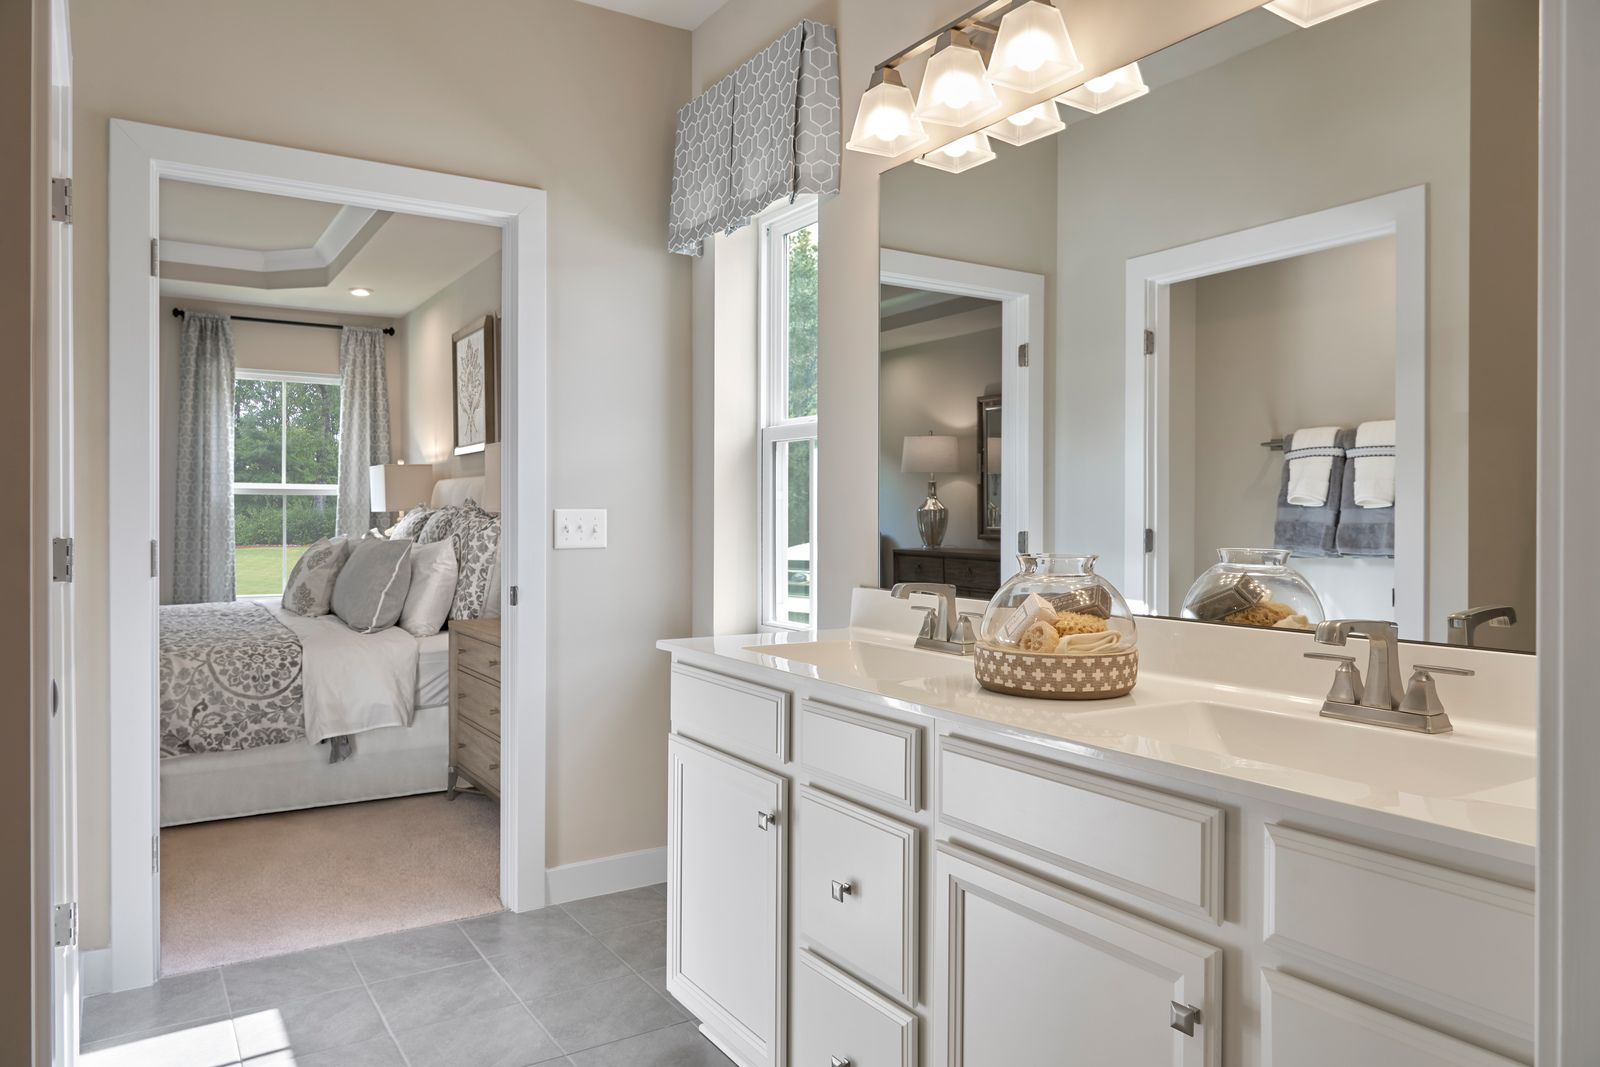 Bathroom featured in the Genoa By Ryan Homes in Columbia, SC